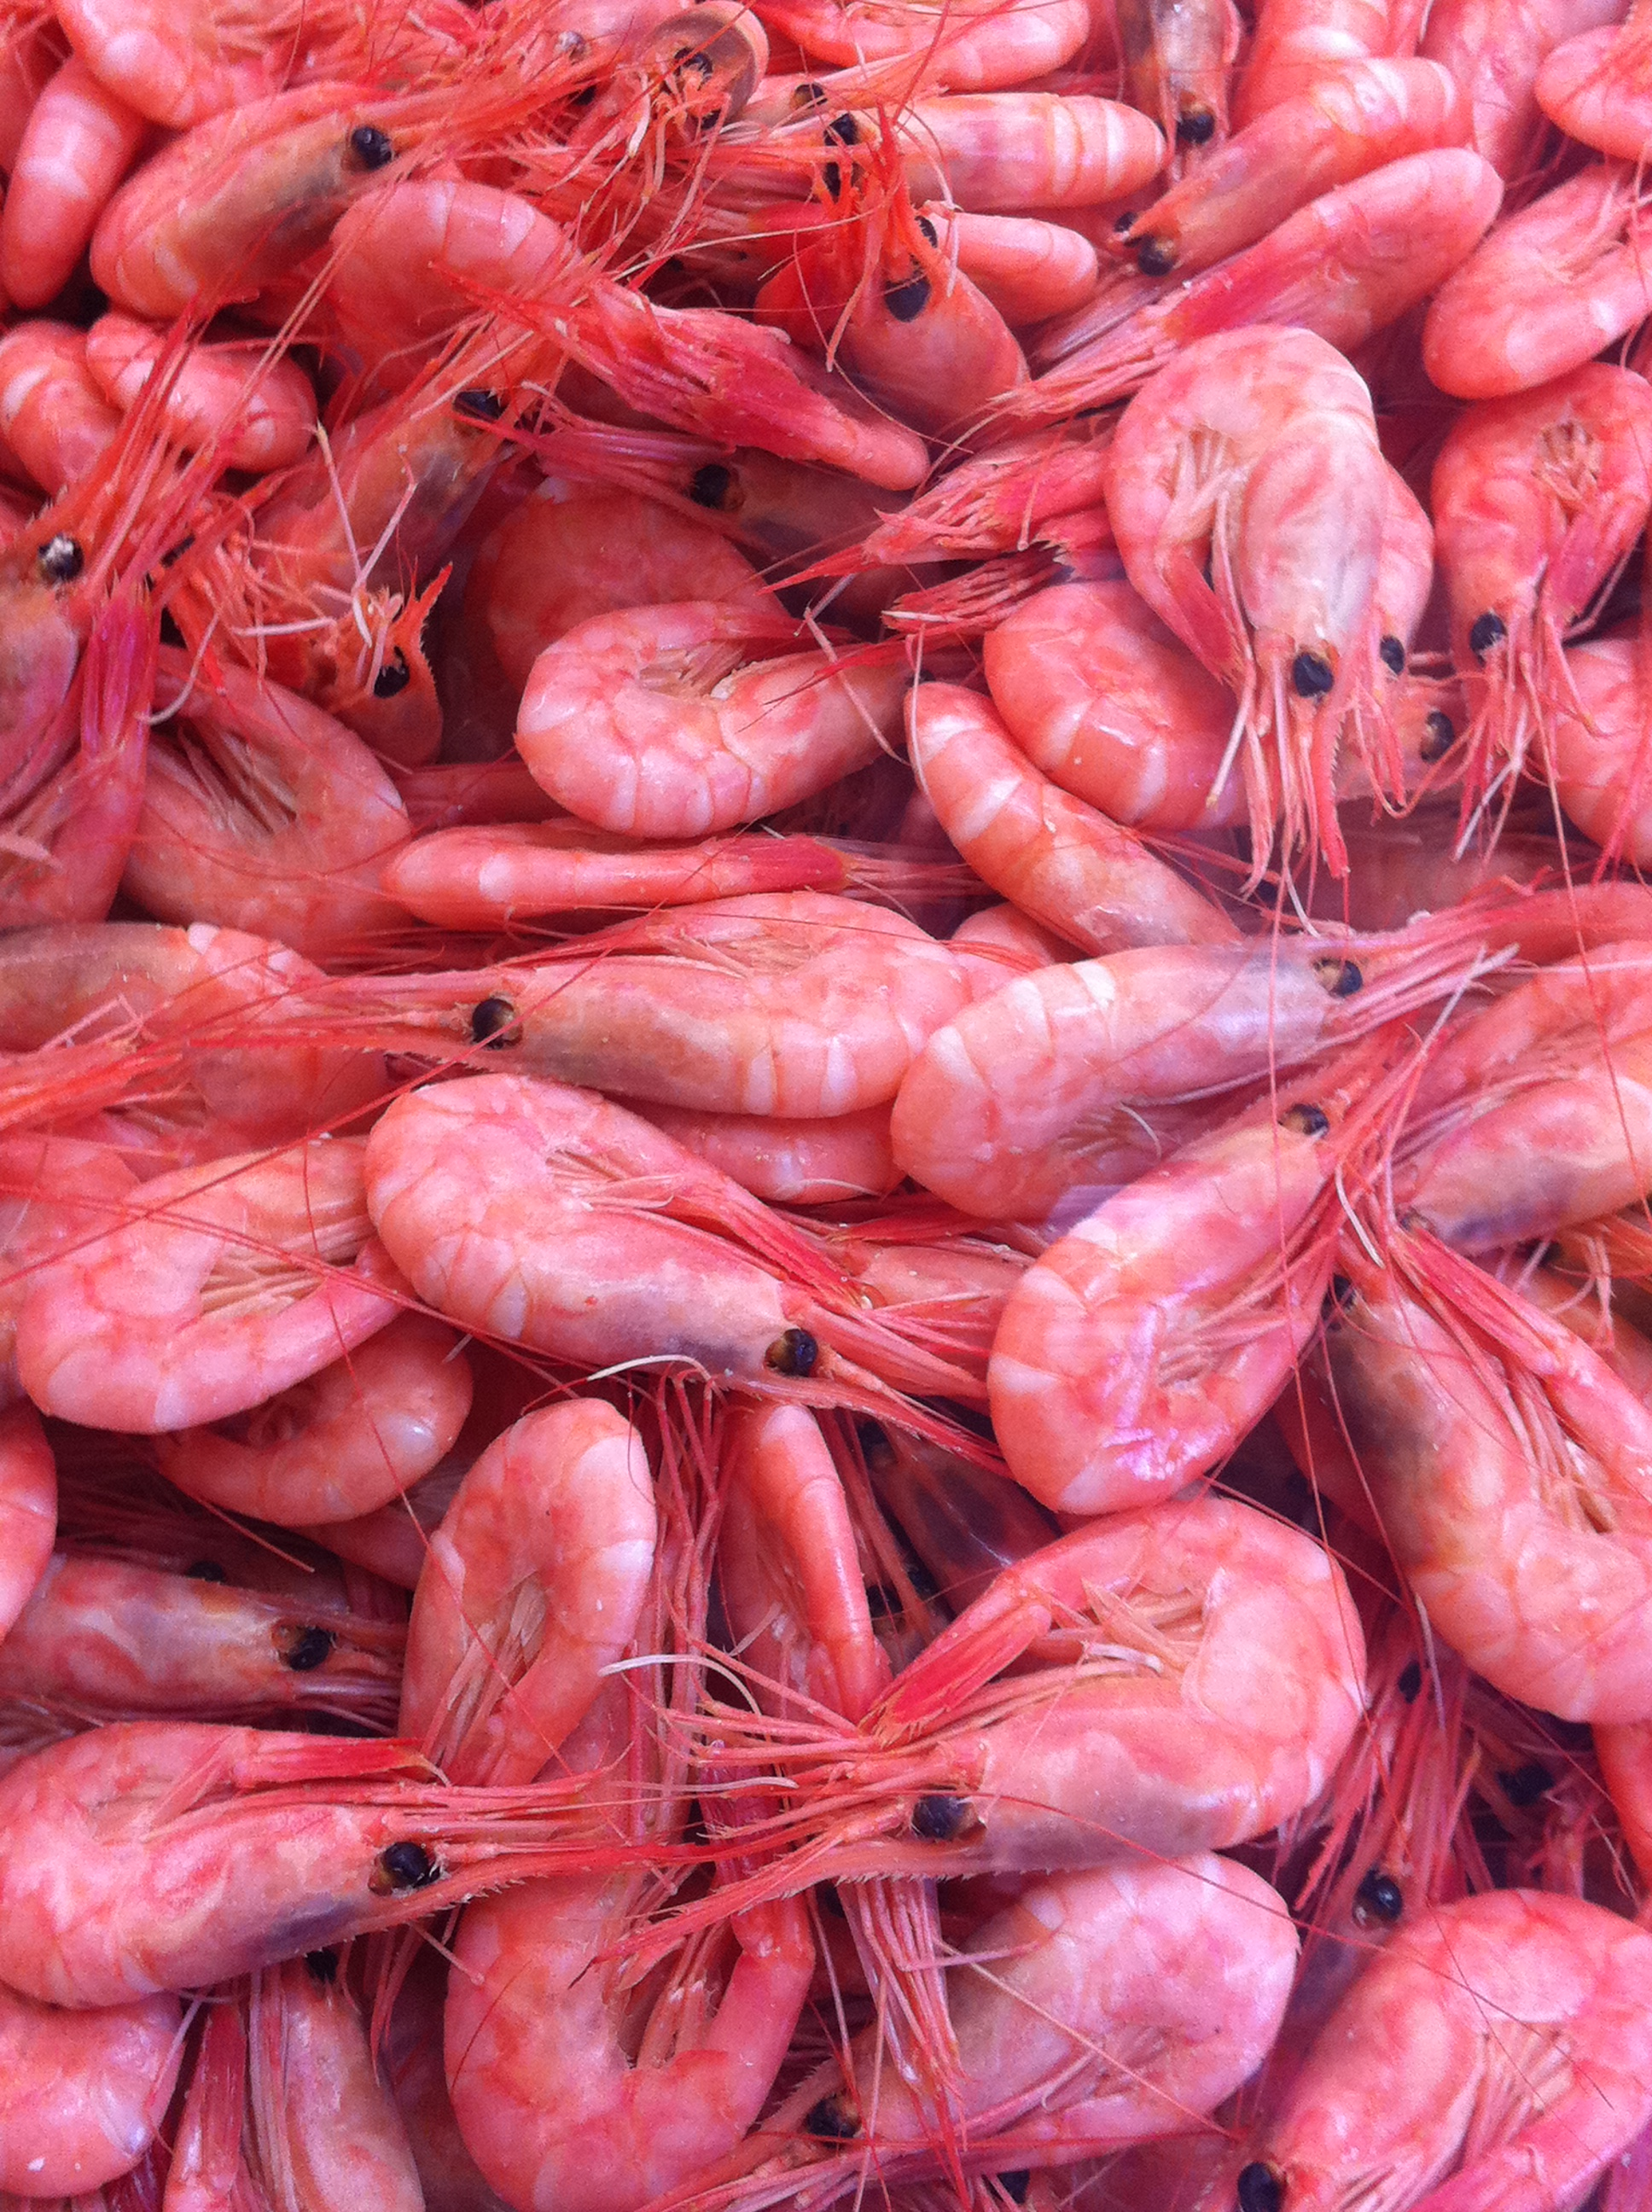 Prawns on sale at Smögen fish market in Bohuslän, Sweden